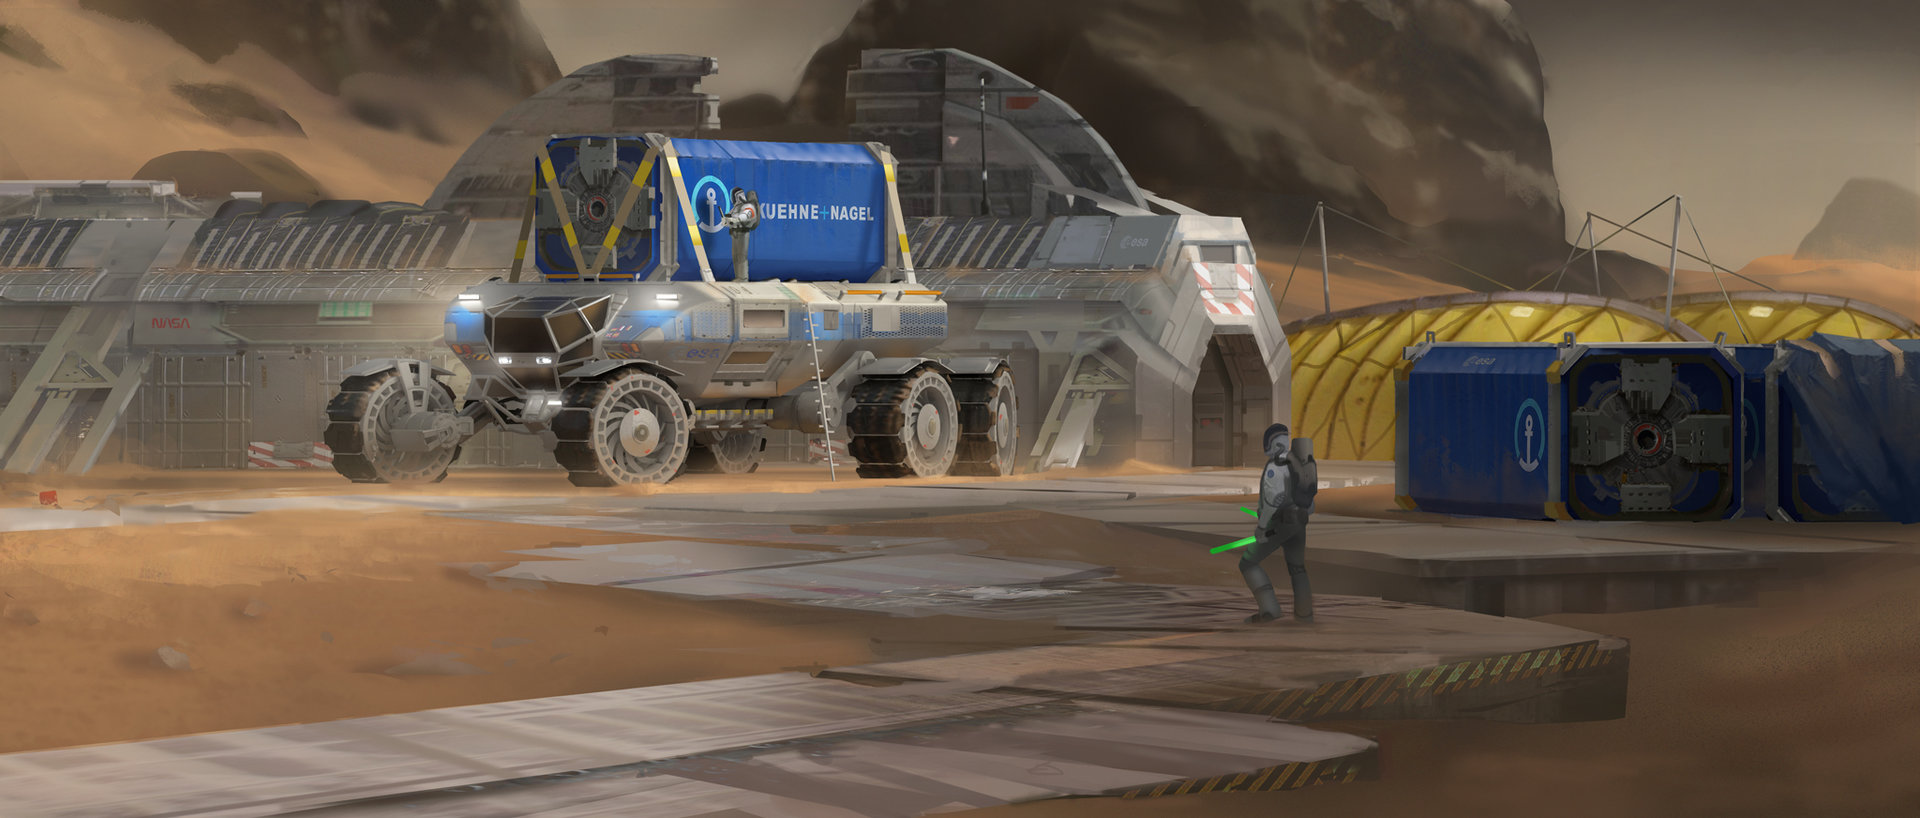 Heavy Mars Rover - Containers